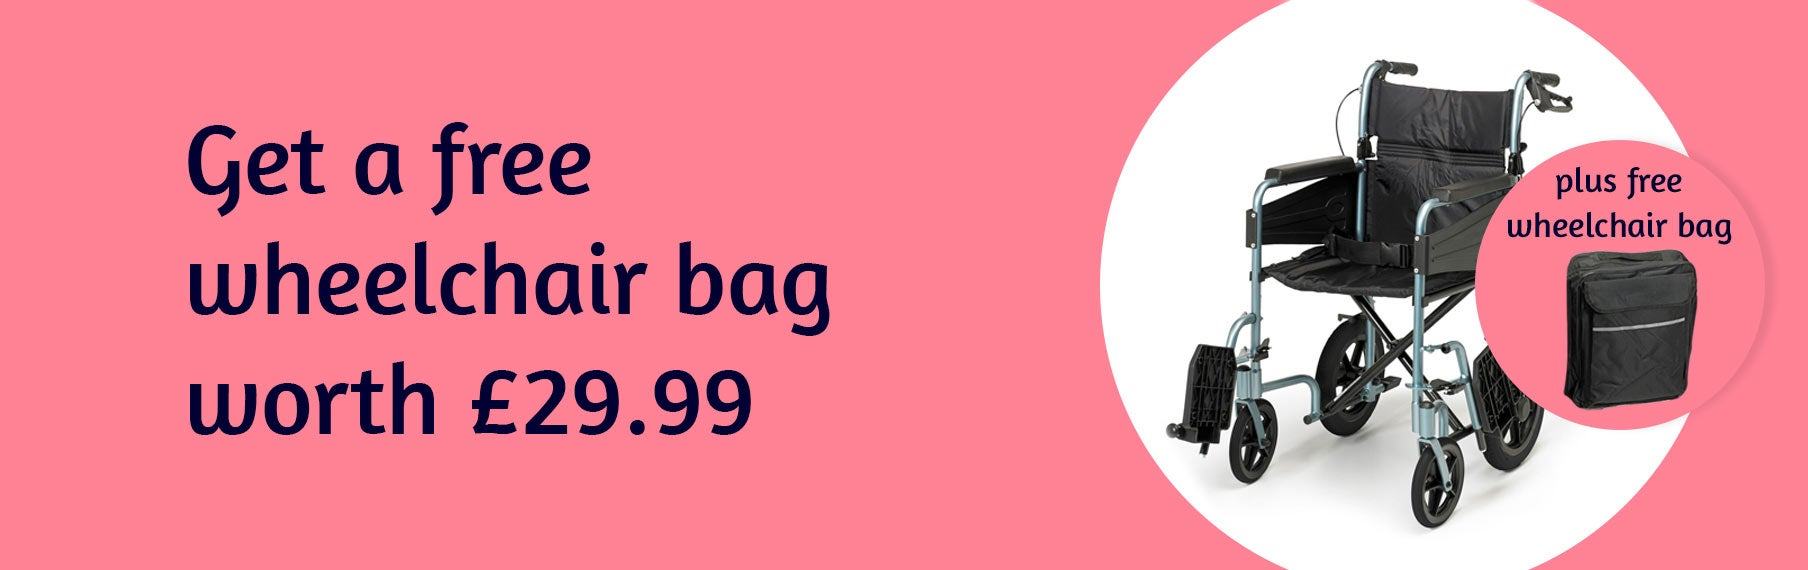 Get a wheelchair bag worth £29.99 for free